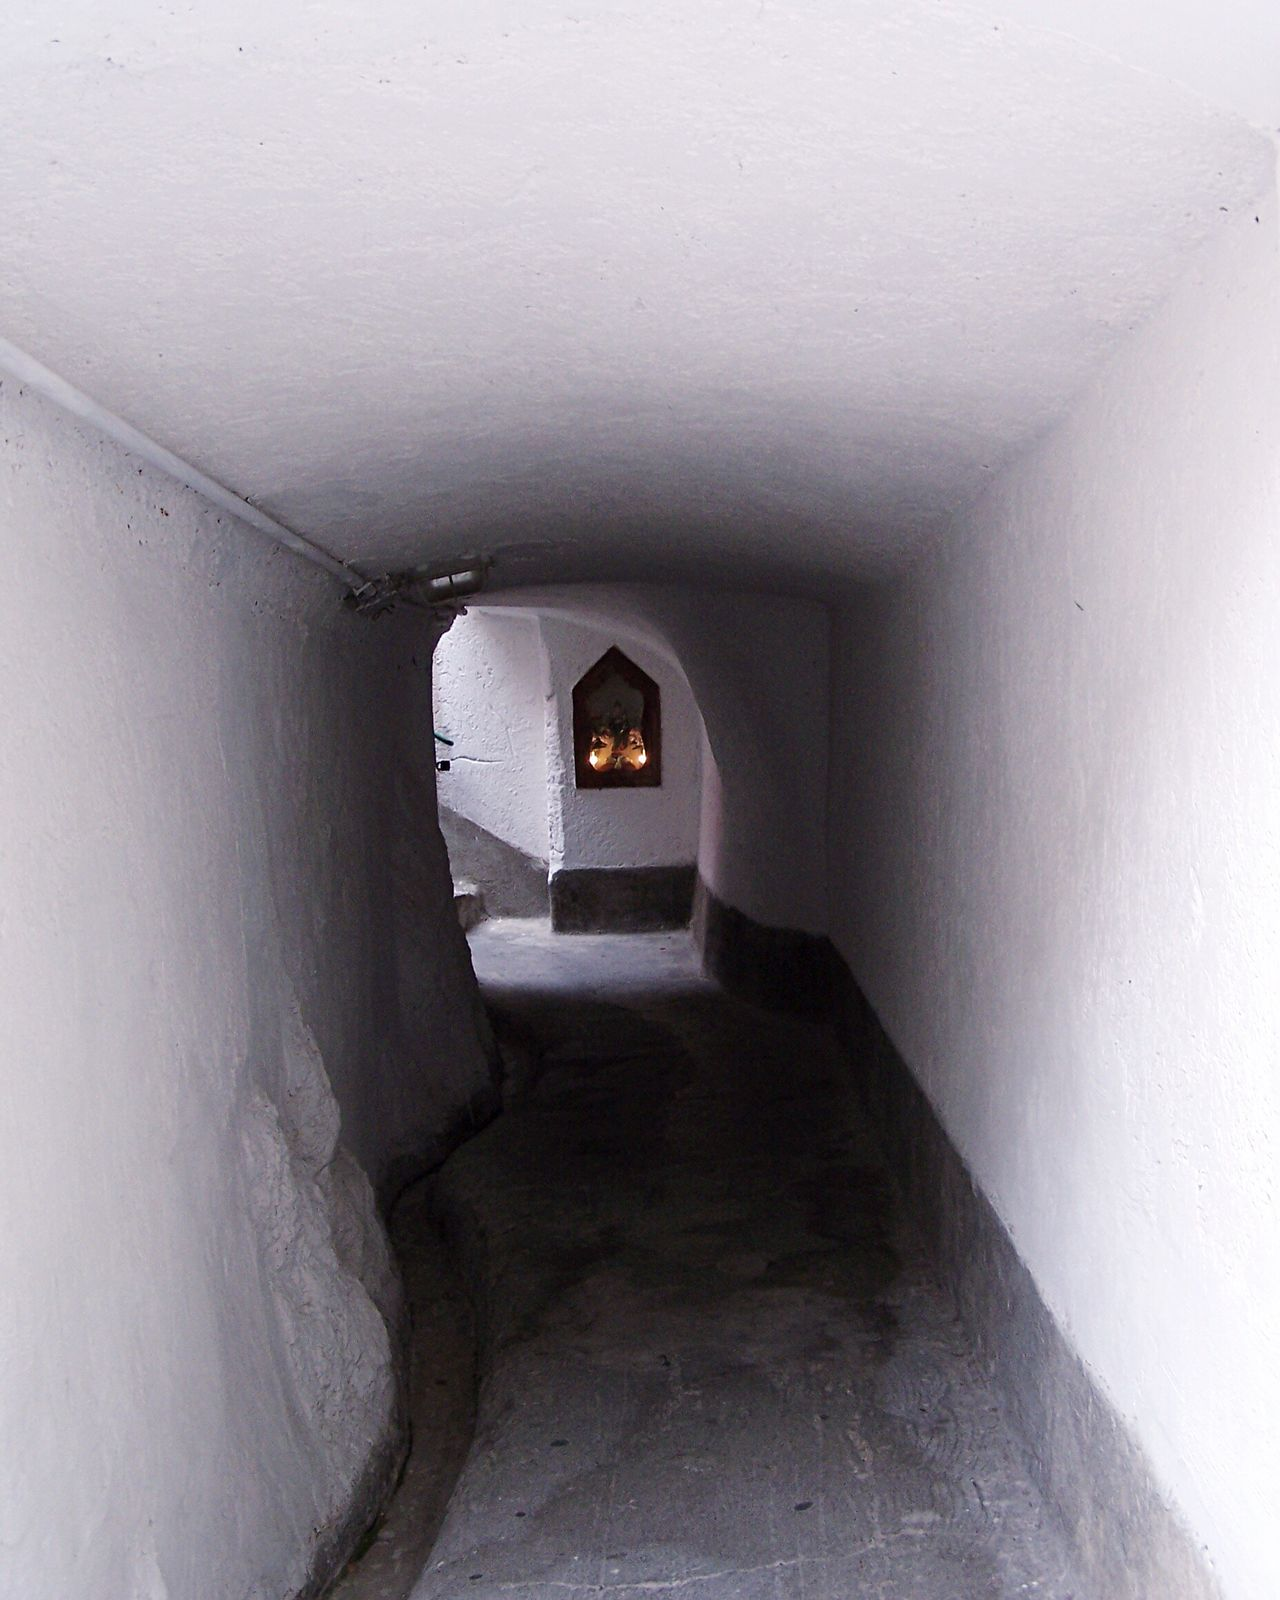 - The light at the end of the tunnel - Light Tunnel Built Structure Holy Religion Religious  Chapel Arch Stairs Corner Candles Italy